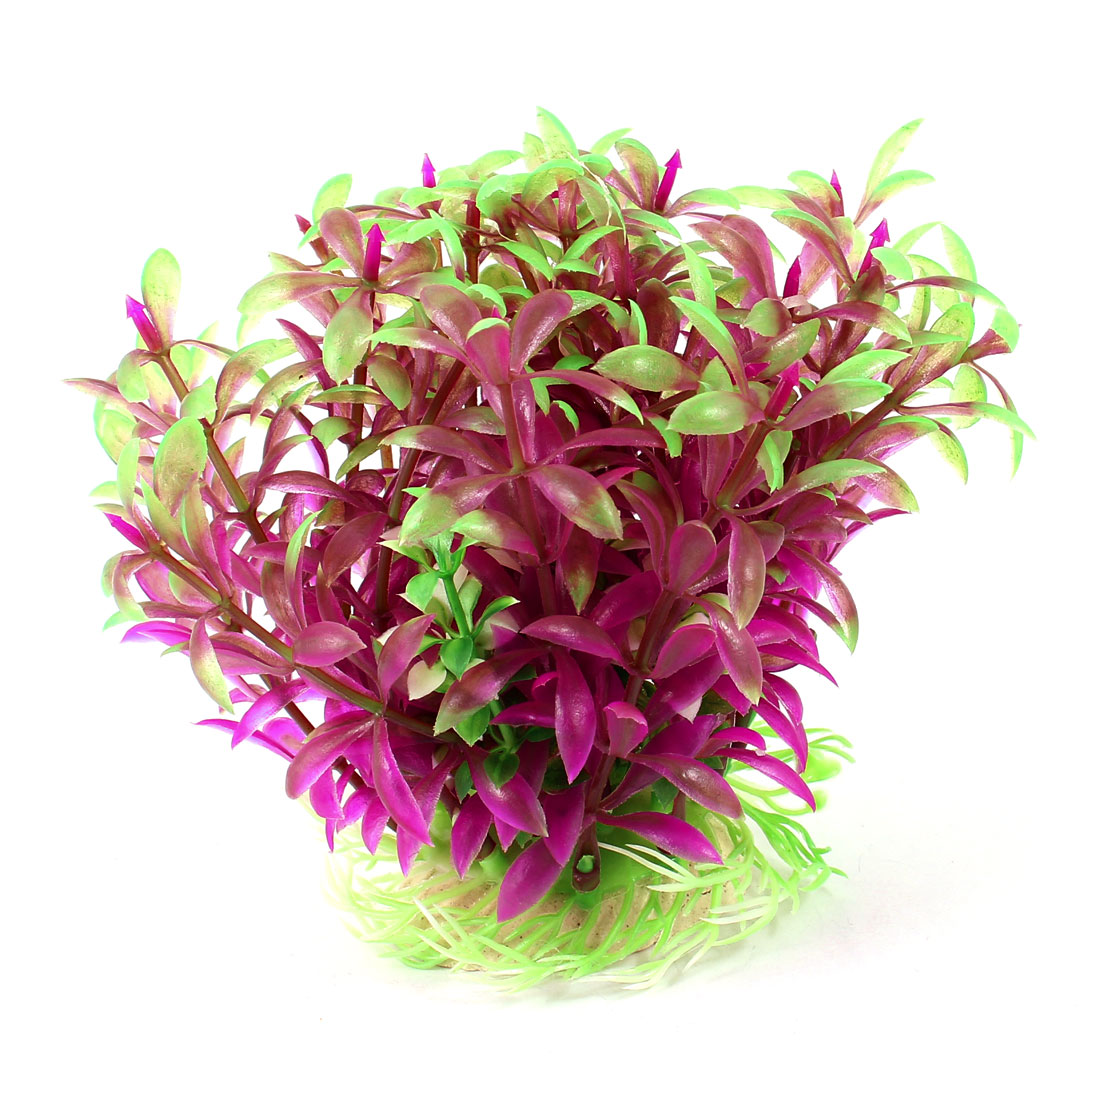 "Aquarium Fish Tank Ornament Landscaping Artificial Emulational Underwater Water Plant Grass Decor Green Fuchsia 4.7"" Height"